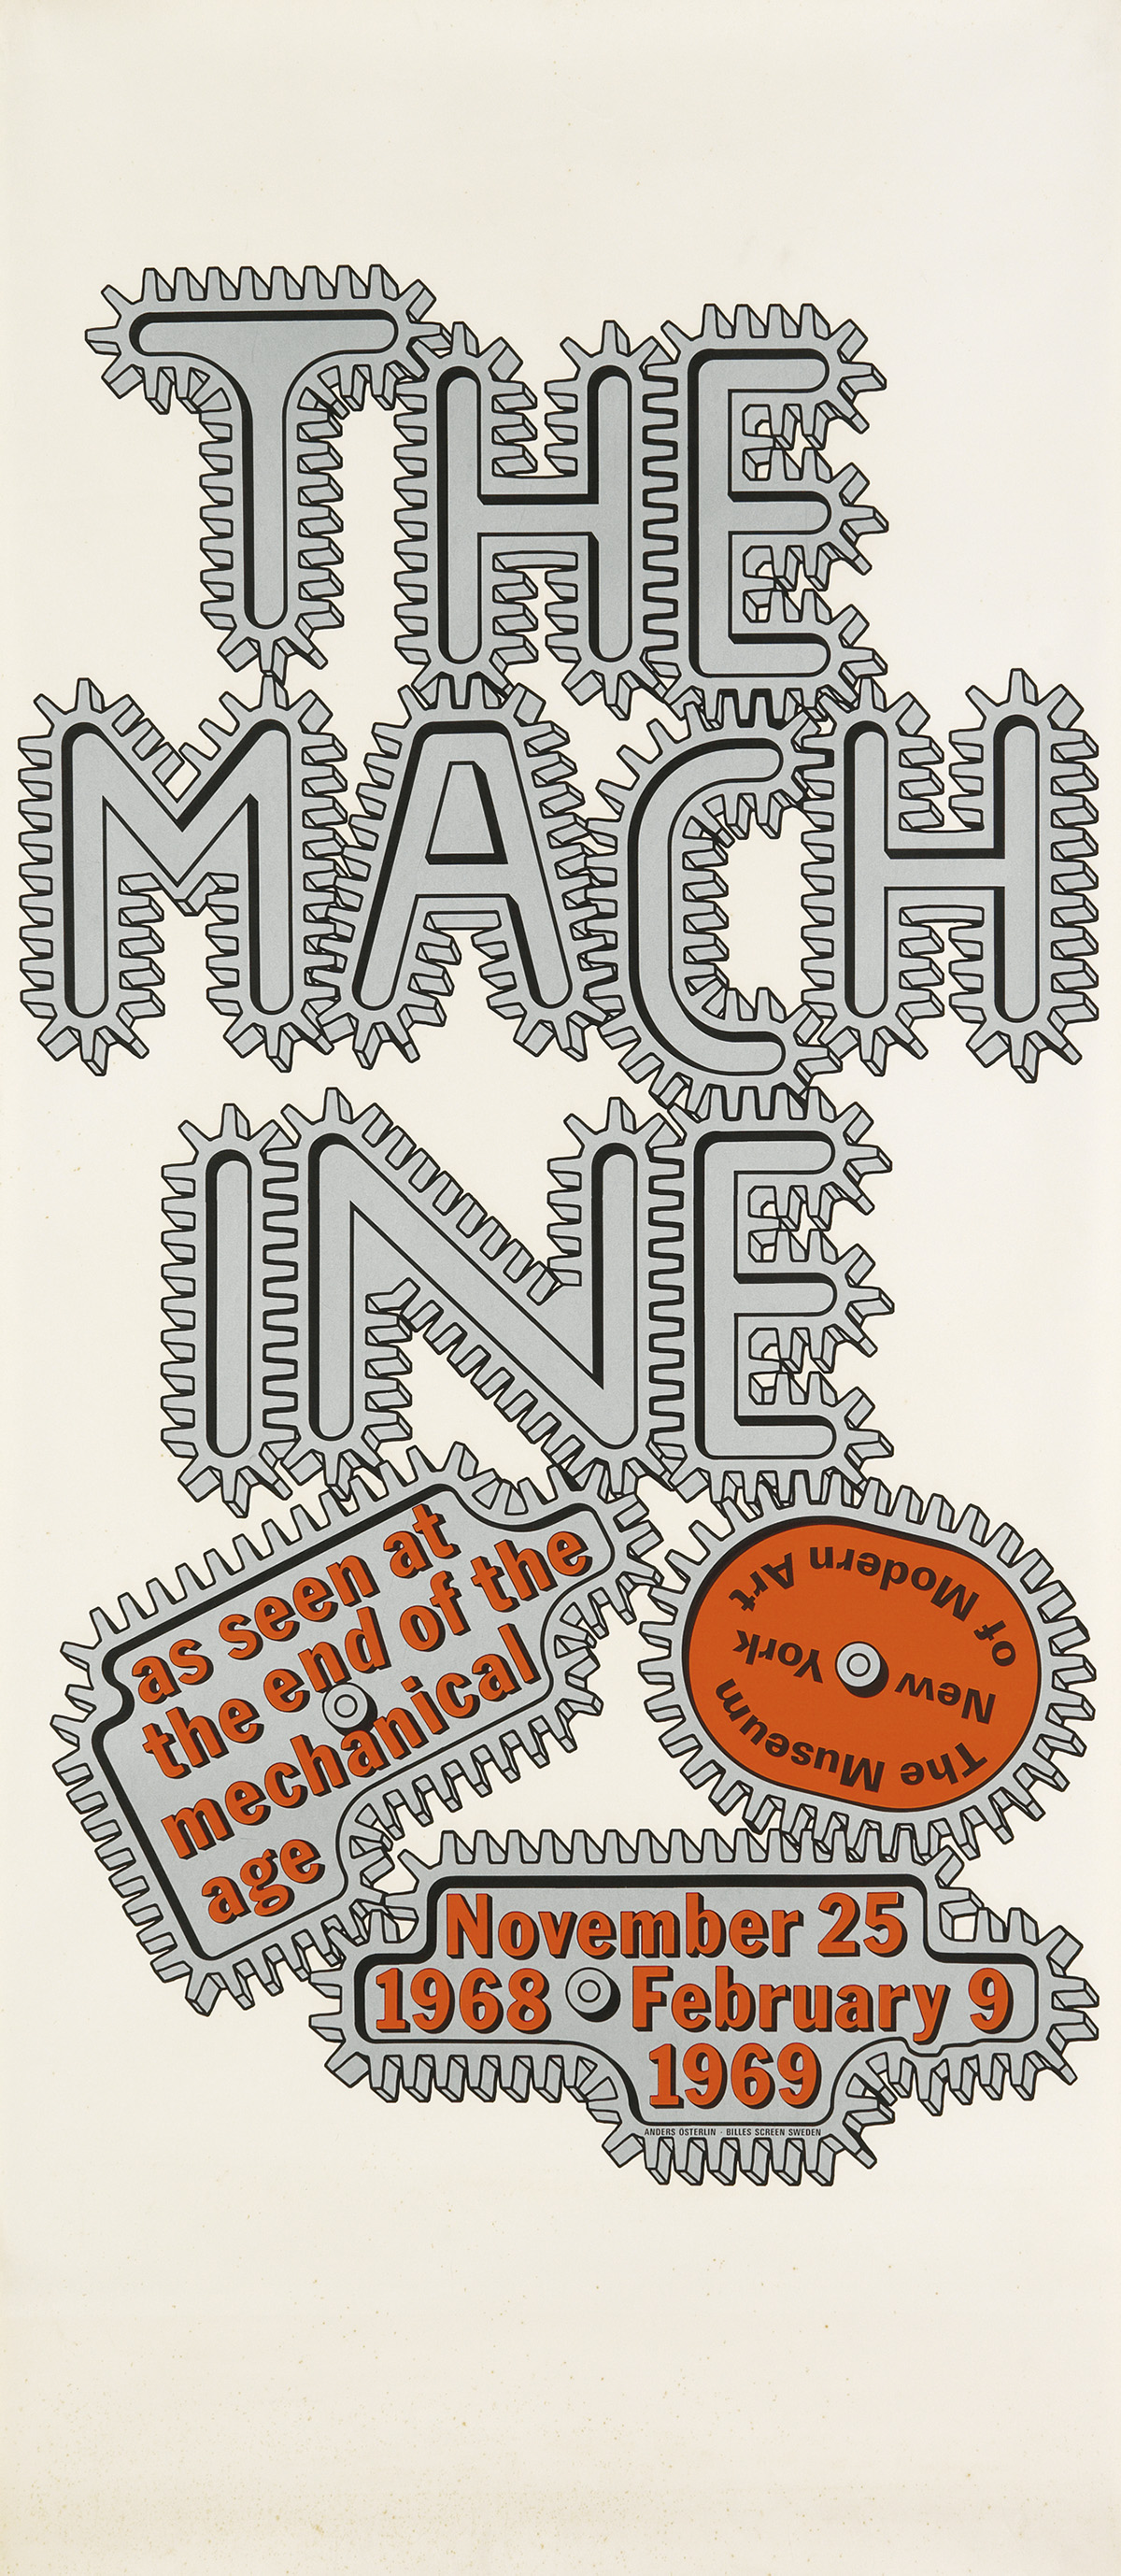 DESIGNER UNKNOWN. THE MACHINE AS SEEN AT THE END OF THE MECHANICAL AGE / THE MUSEUM OF MODERN ART. 1968. 53x23 inches, 134x58 cm.